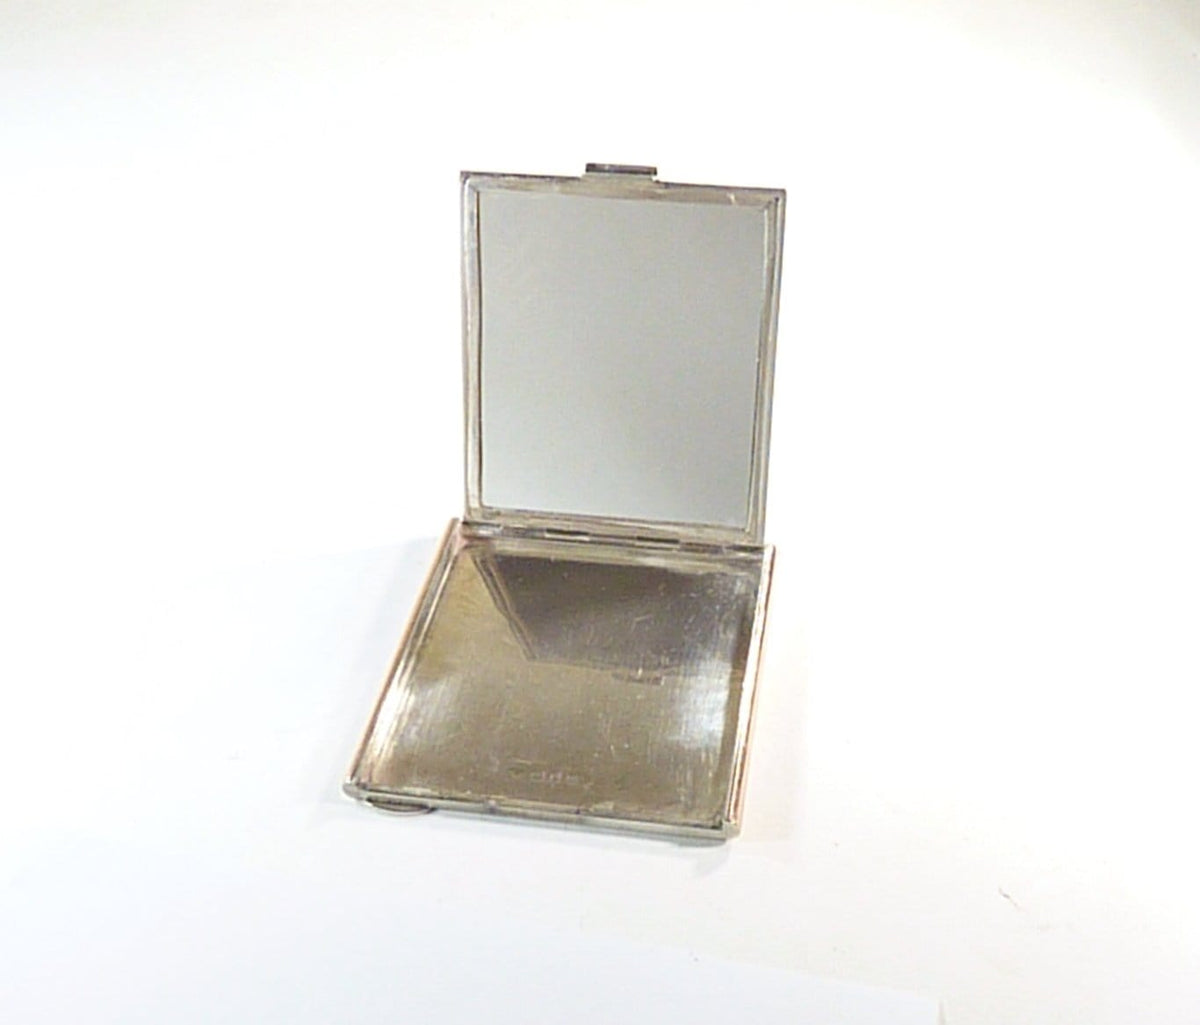 Harrods Ltd cased silver compact mirror